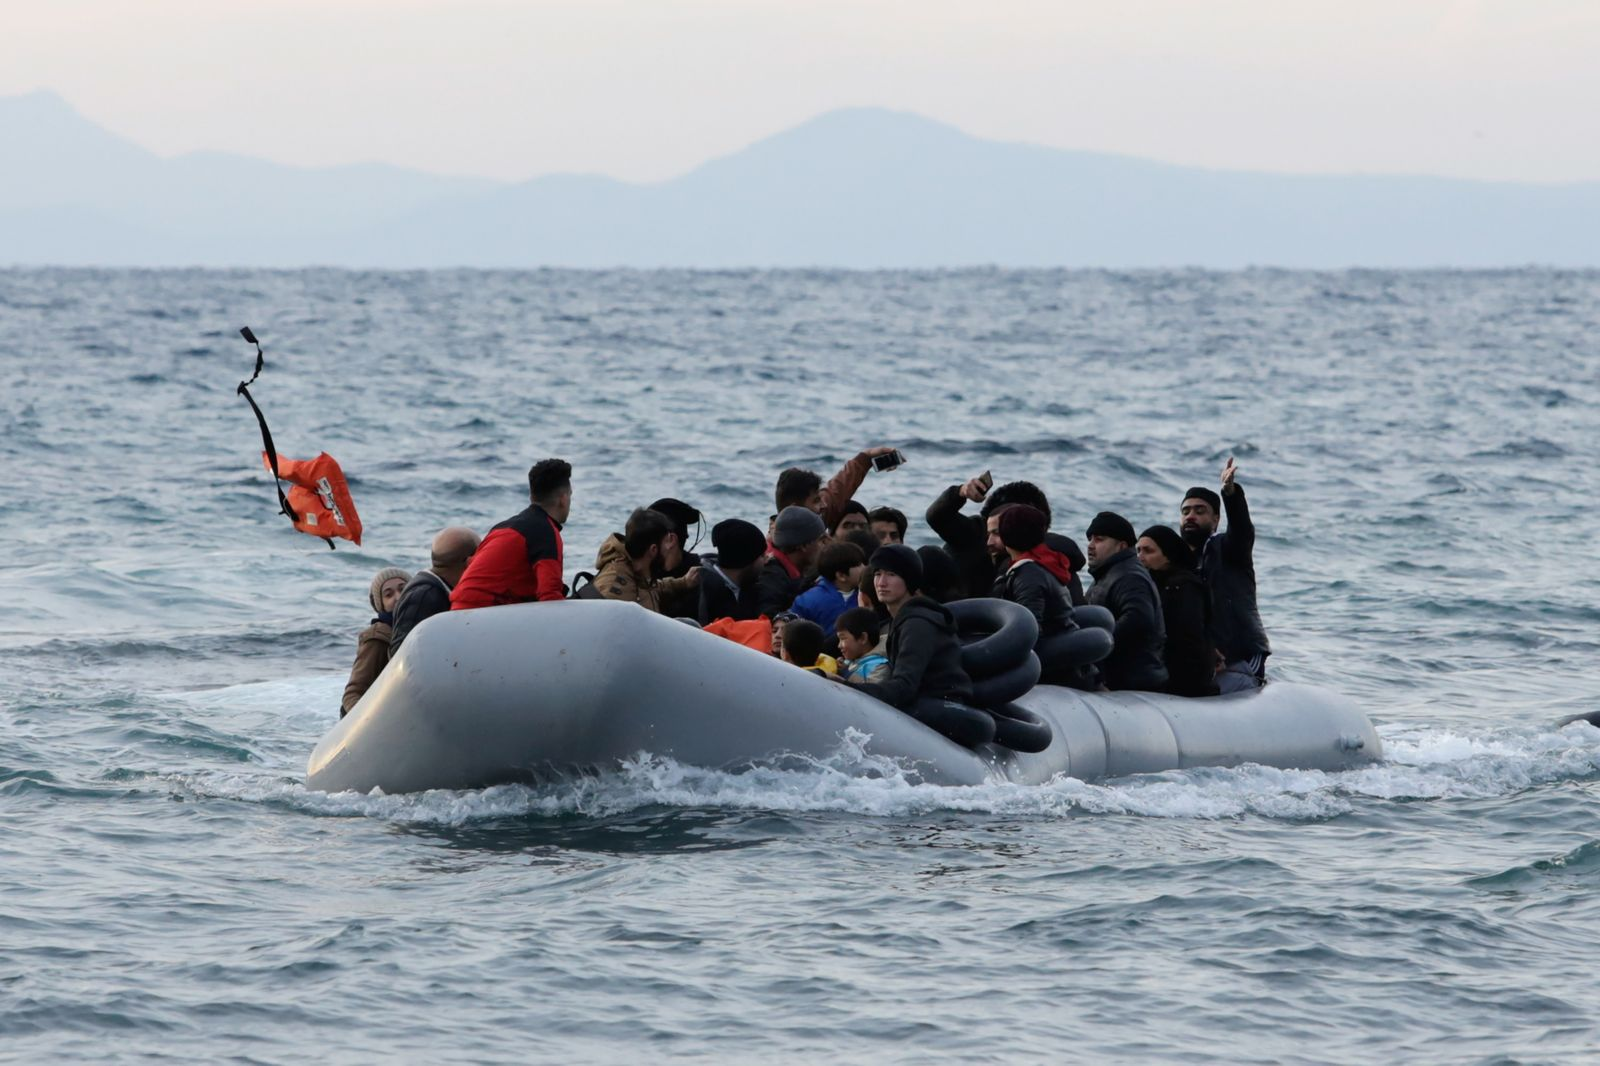 Migrants from Syria, Iraq, Afghanistan and Palestinian territories arrive on a dinghy near the city of Mytilene, after crossing part of the Aegean Sea from Turkey to the island of Lesbos